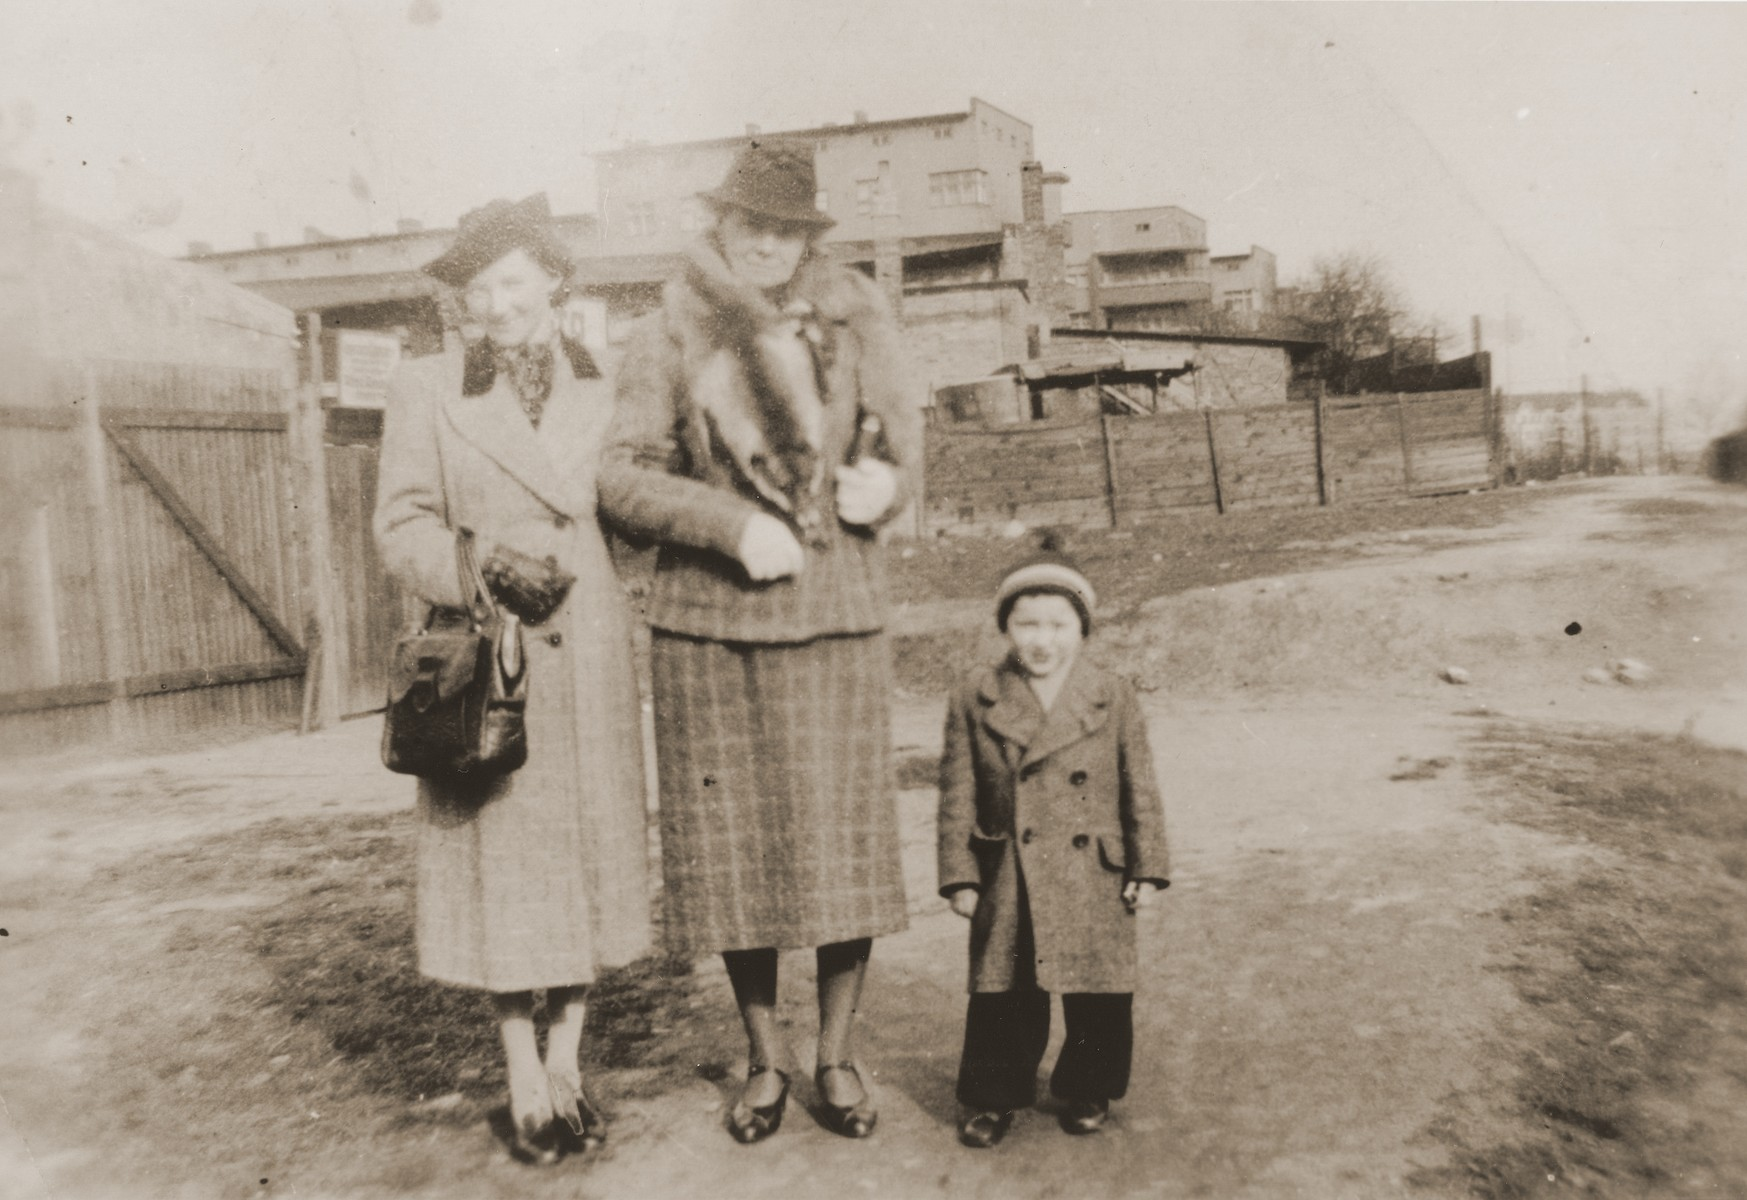 Mathilde Stern stands on an unpaved road in Willebadessen with her daughter-in-law, Resi Markhoff Stern, and grandson, Manfred.